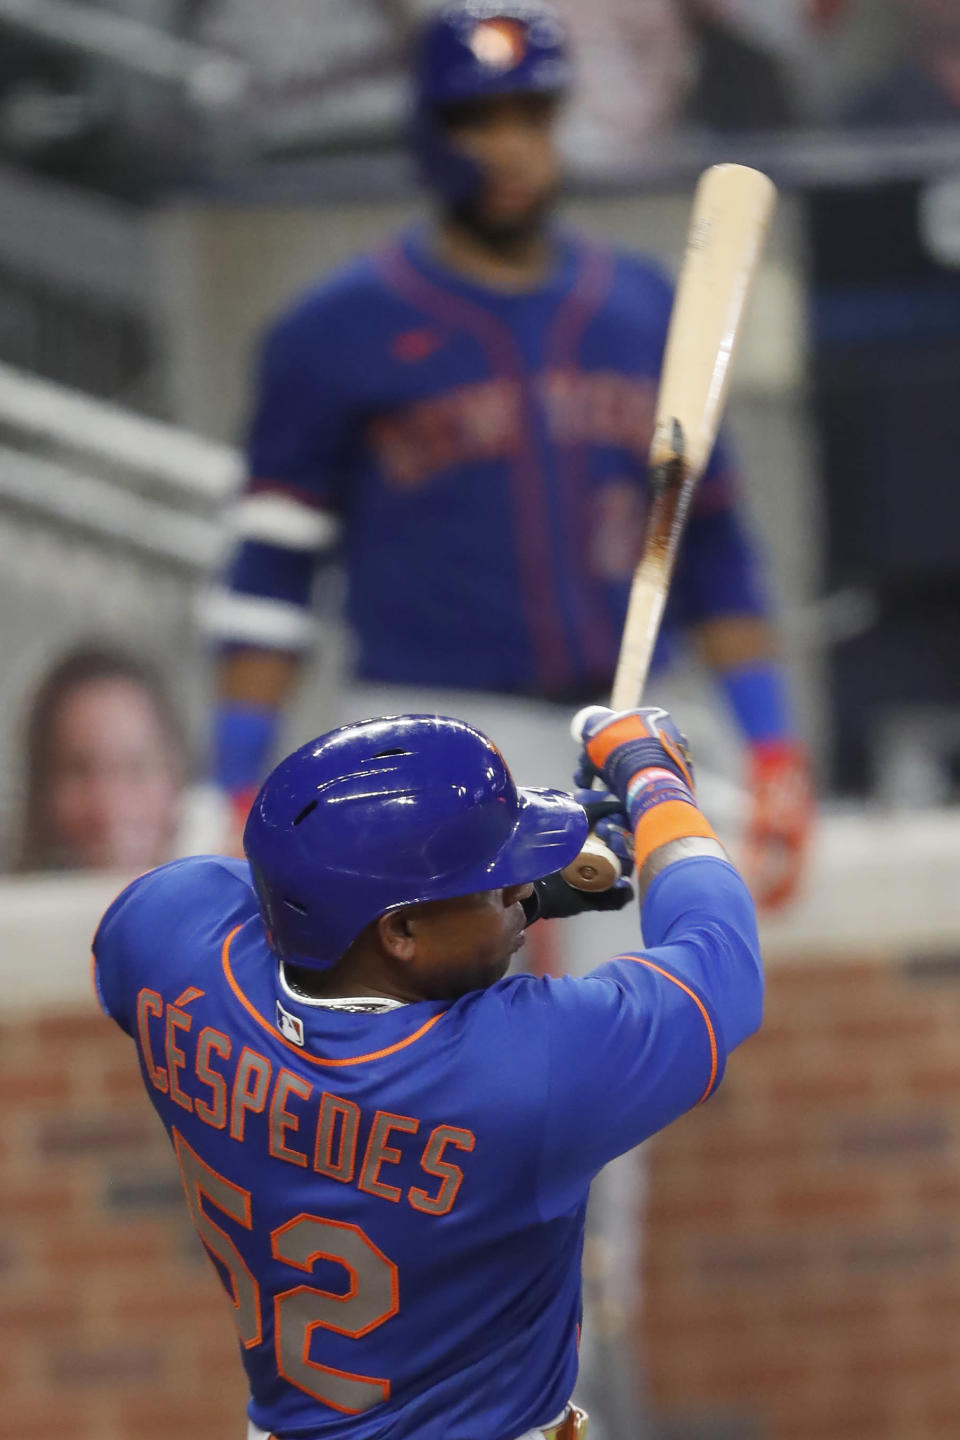 New York Mets' Yoenis Cespedes follows thorough on a two-run double in the fifth inning of a baseball game against the Atlanta Braves Friday, July 31, 2020, in Atlanta. (AP Photo/John Bazemore)